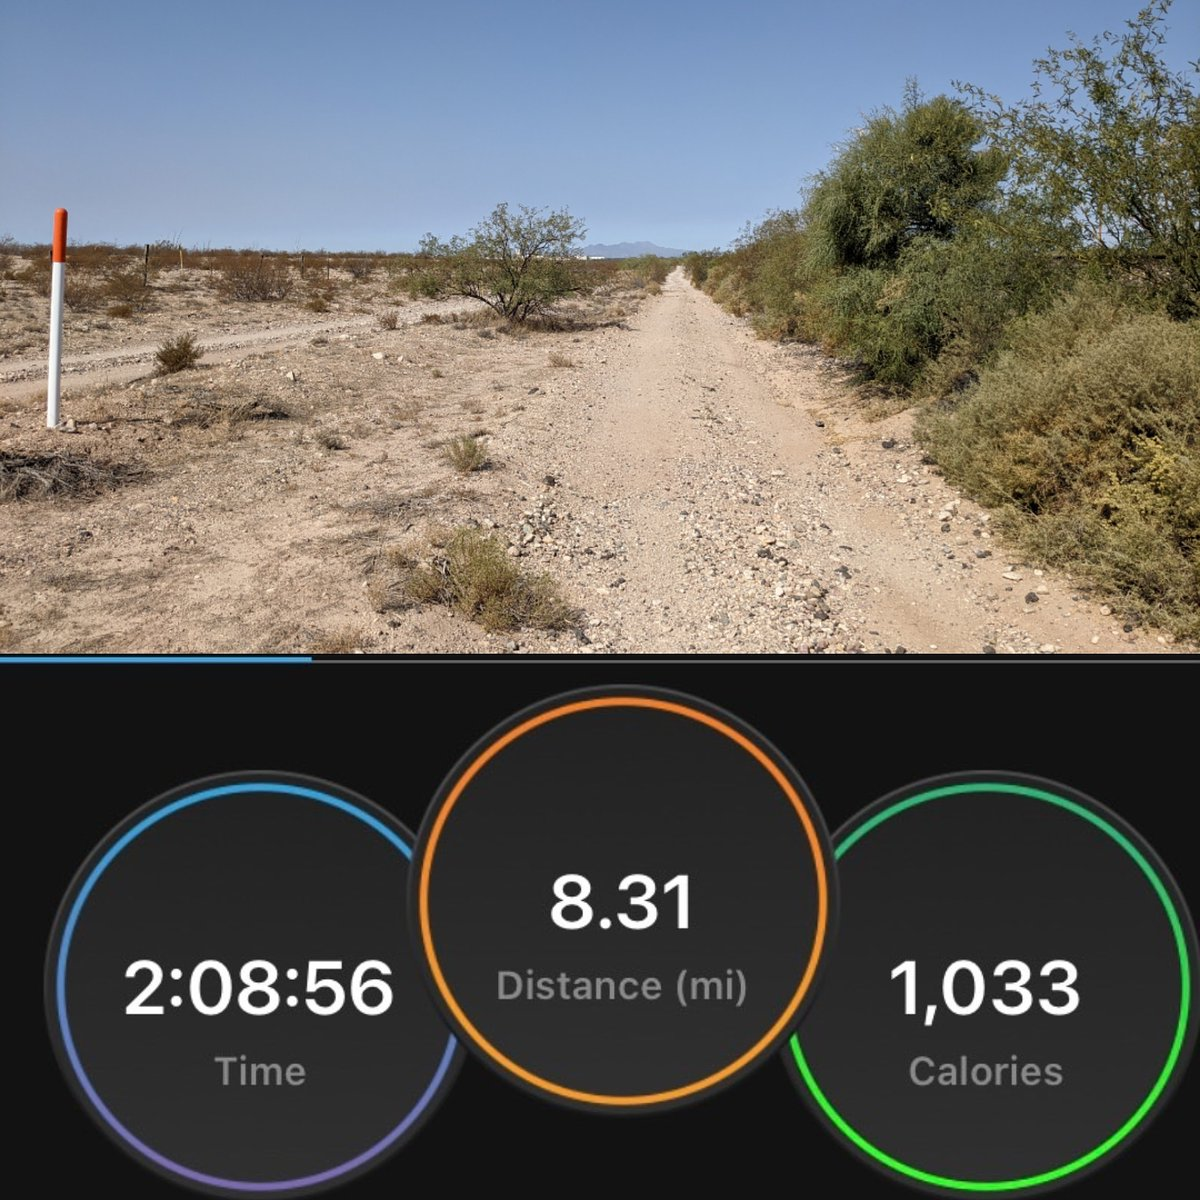 Easy long trail run, my knee was bothering me again so I added two short walks. The weather was still pretty warm 88°. Still glad I got this run in alhamdulillah. #running #fitness #health #endorphins  #longrunsunday #Alhamdulillah #trailsarelife https://t.co/qCG6uPvgoC